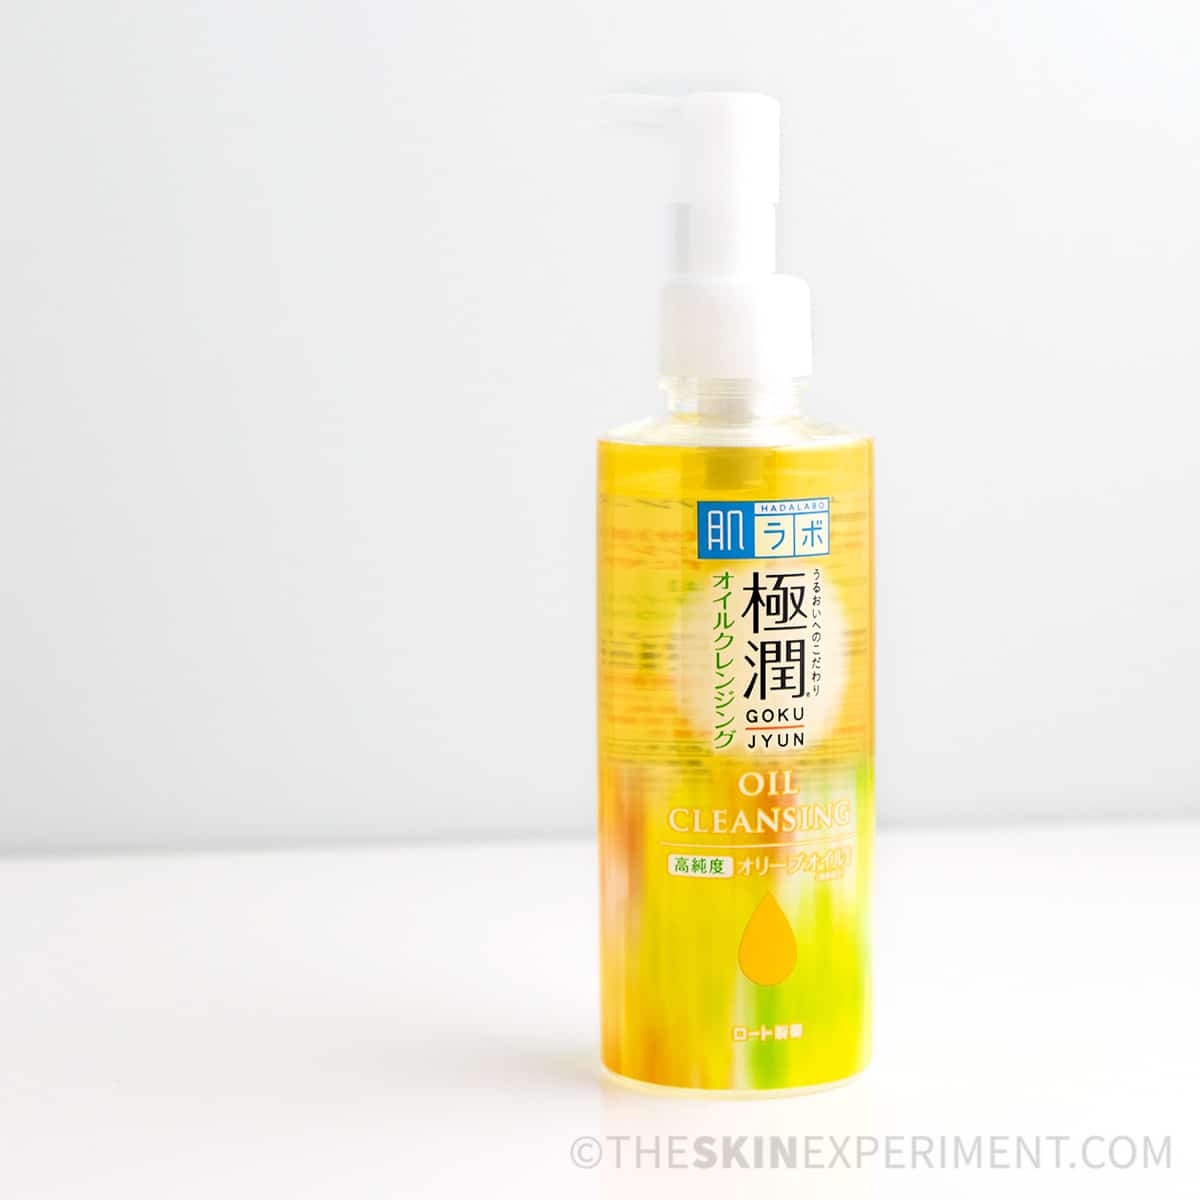 Hada Labo Oil Cleanser Review